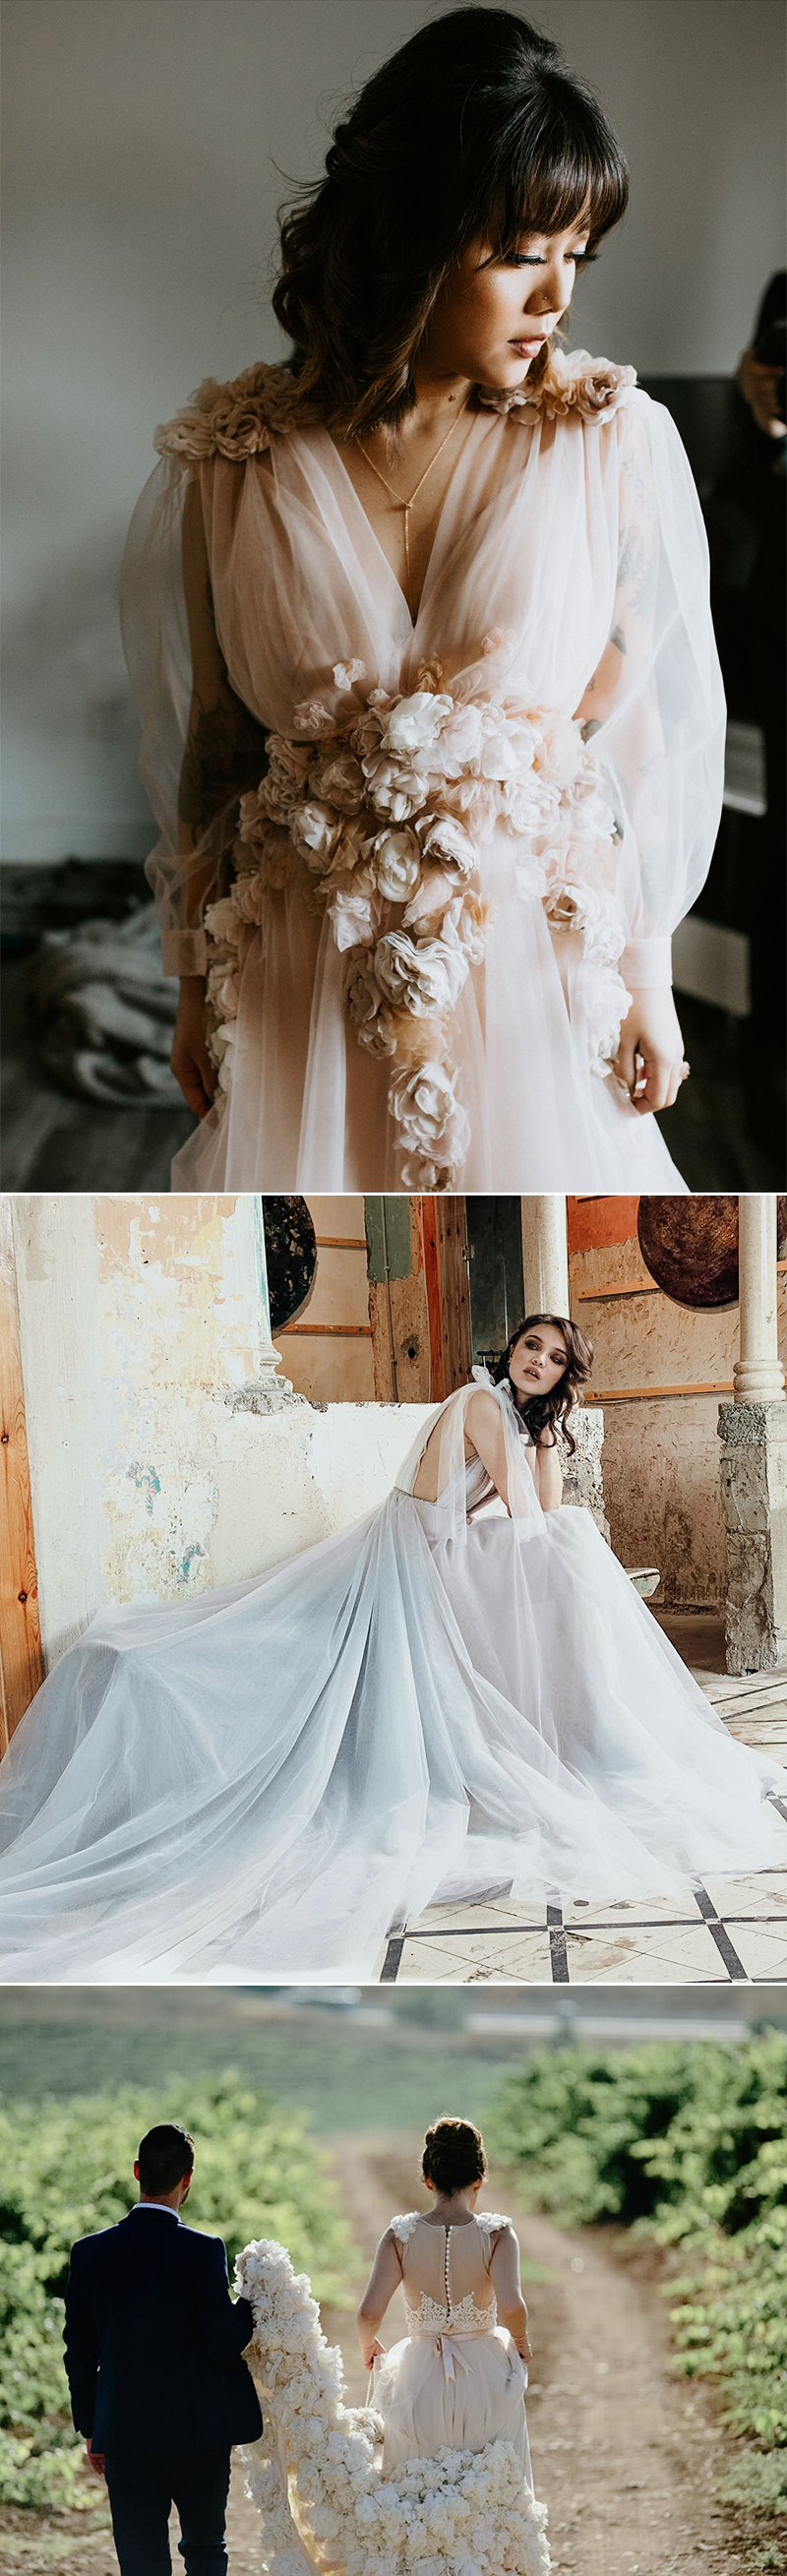 romantic handmade wedding dresses